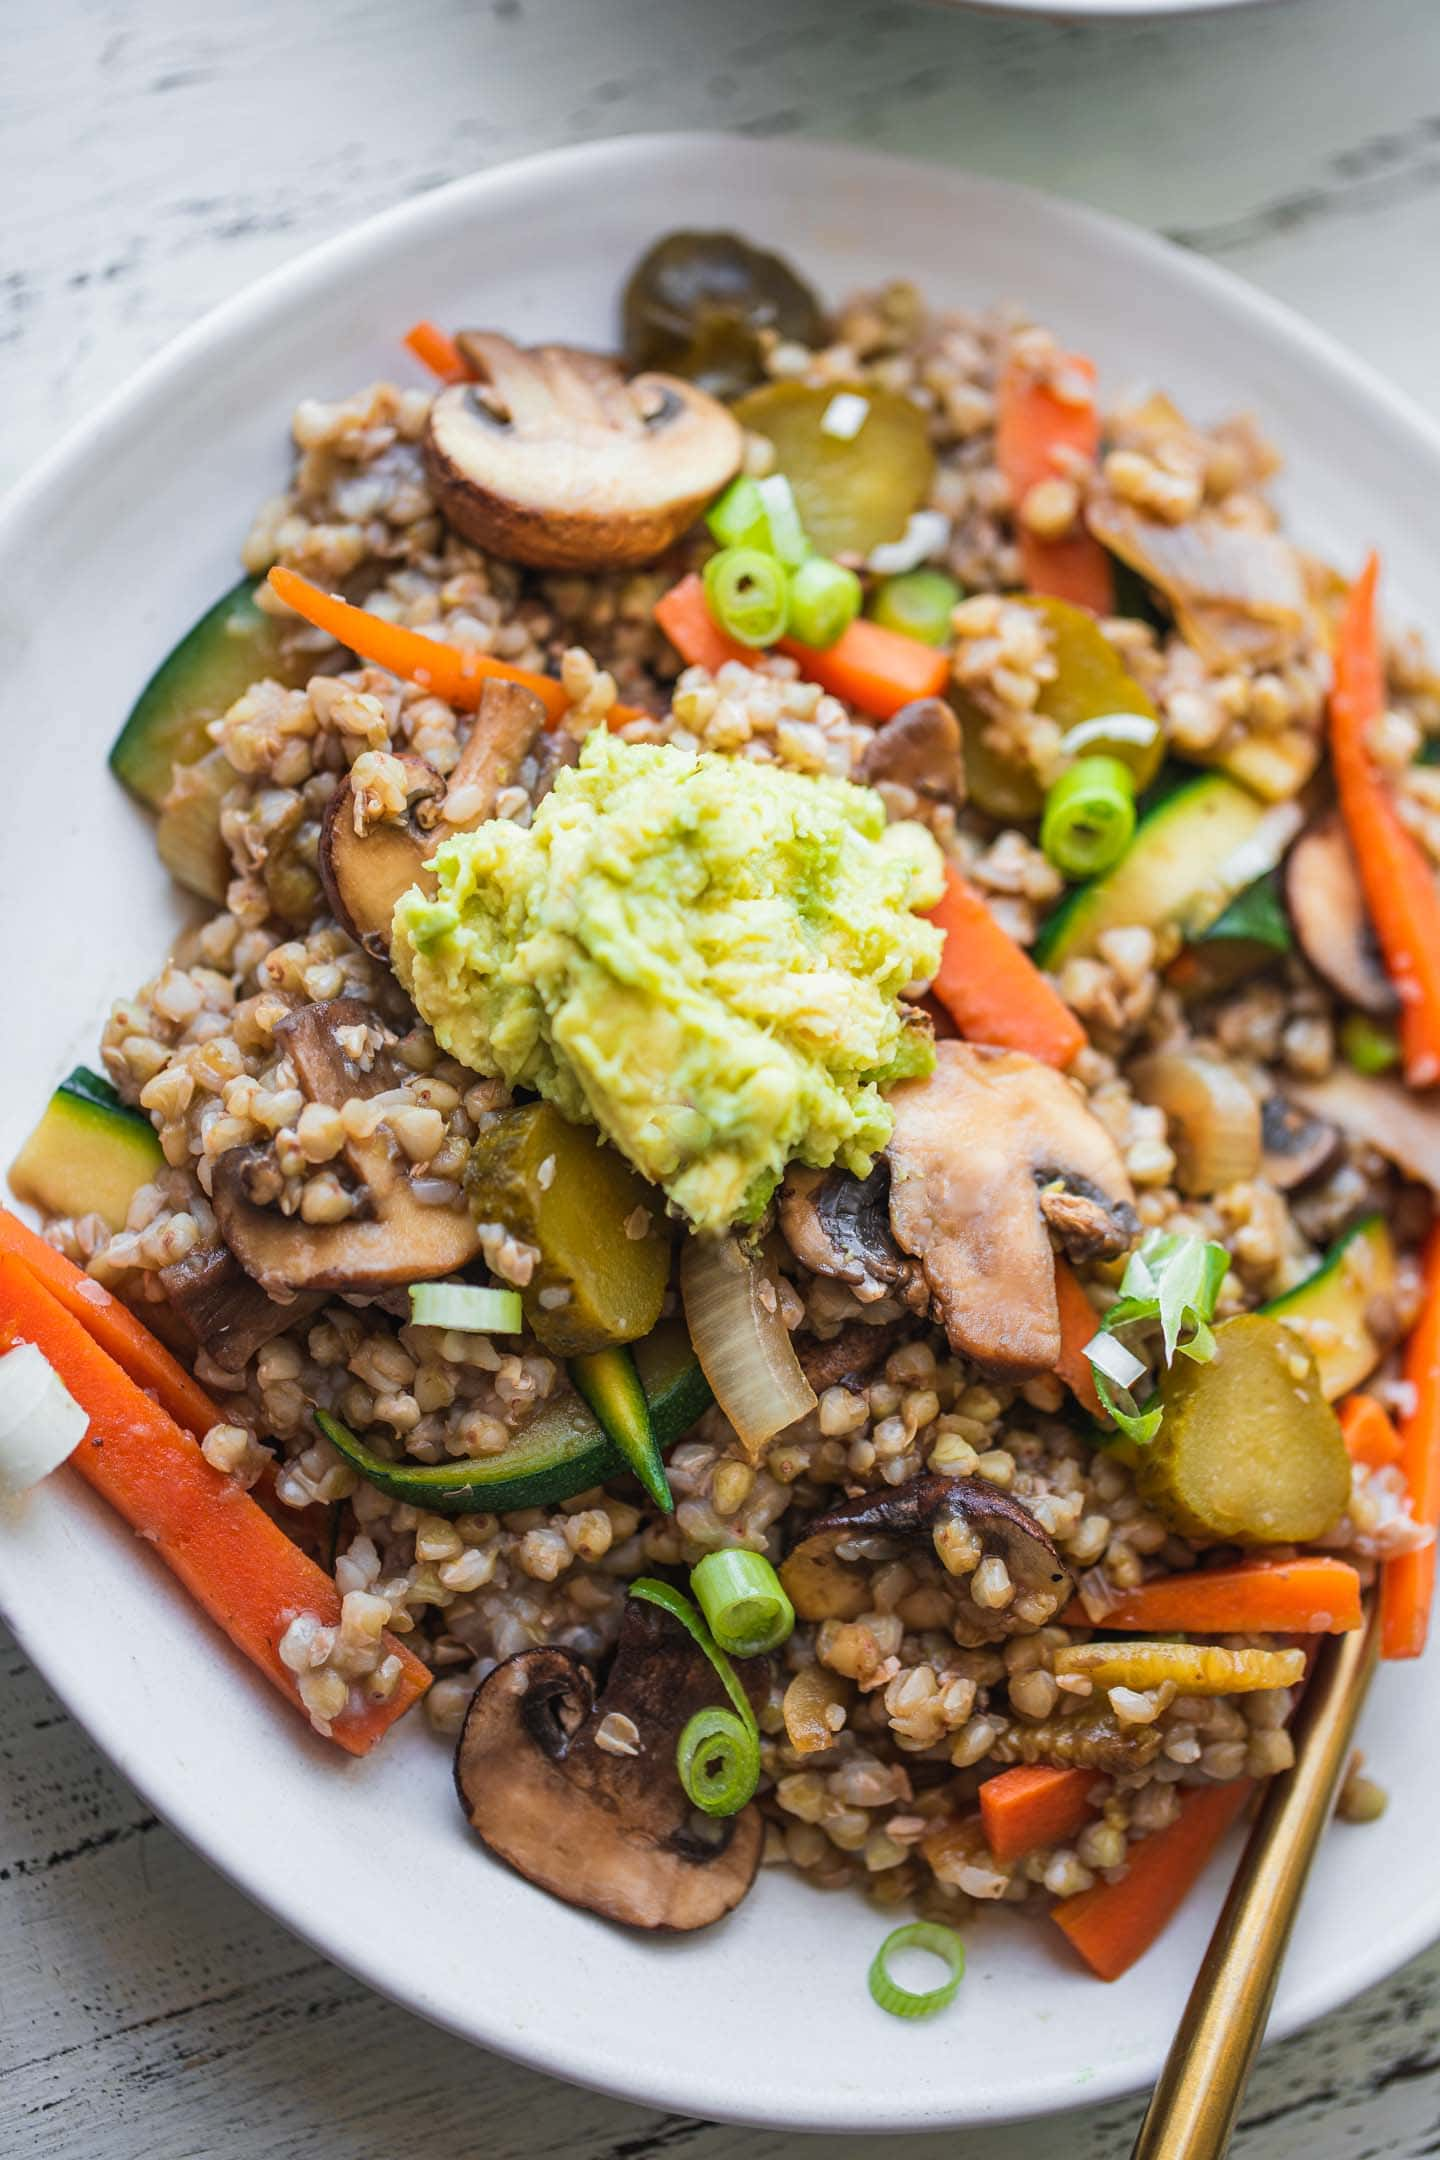 Buckwheat with vegetables and avocado sauce in a bowl